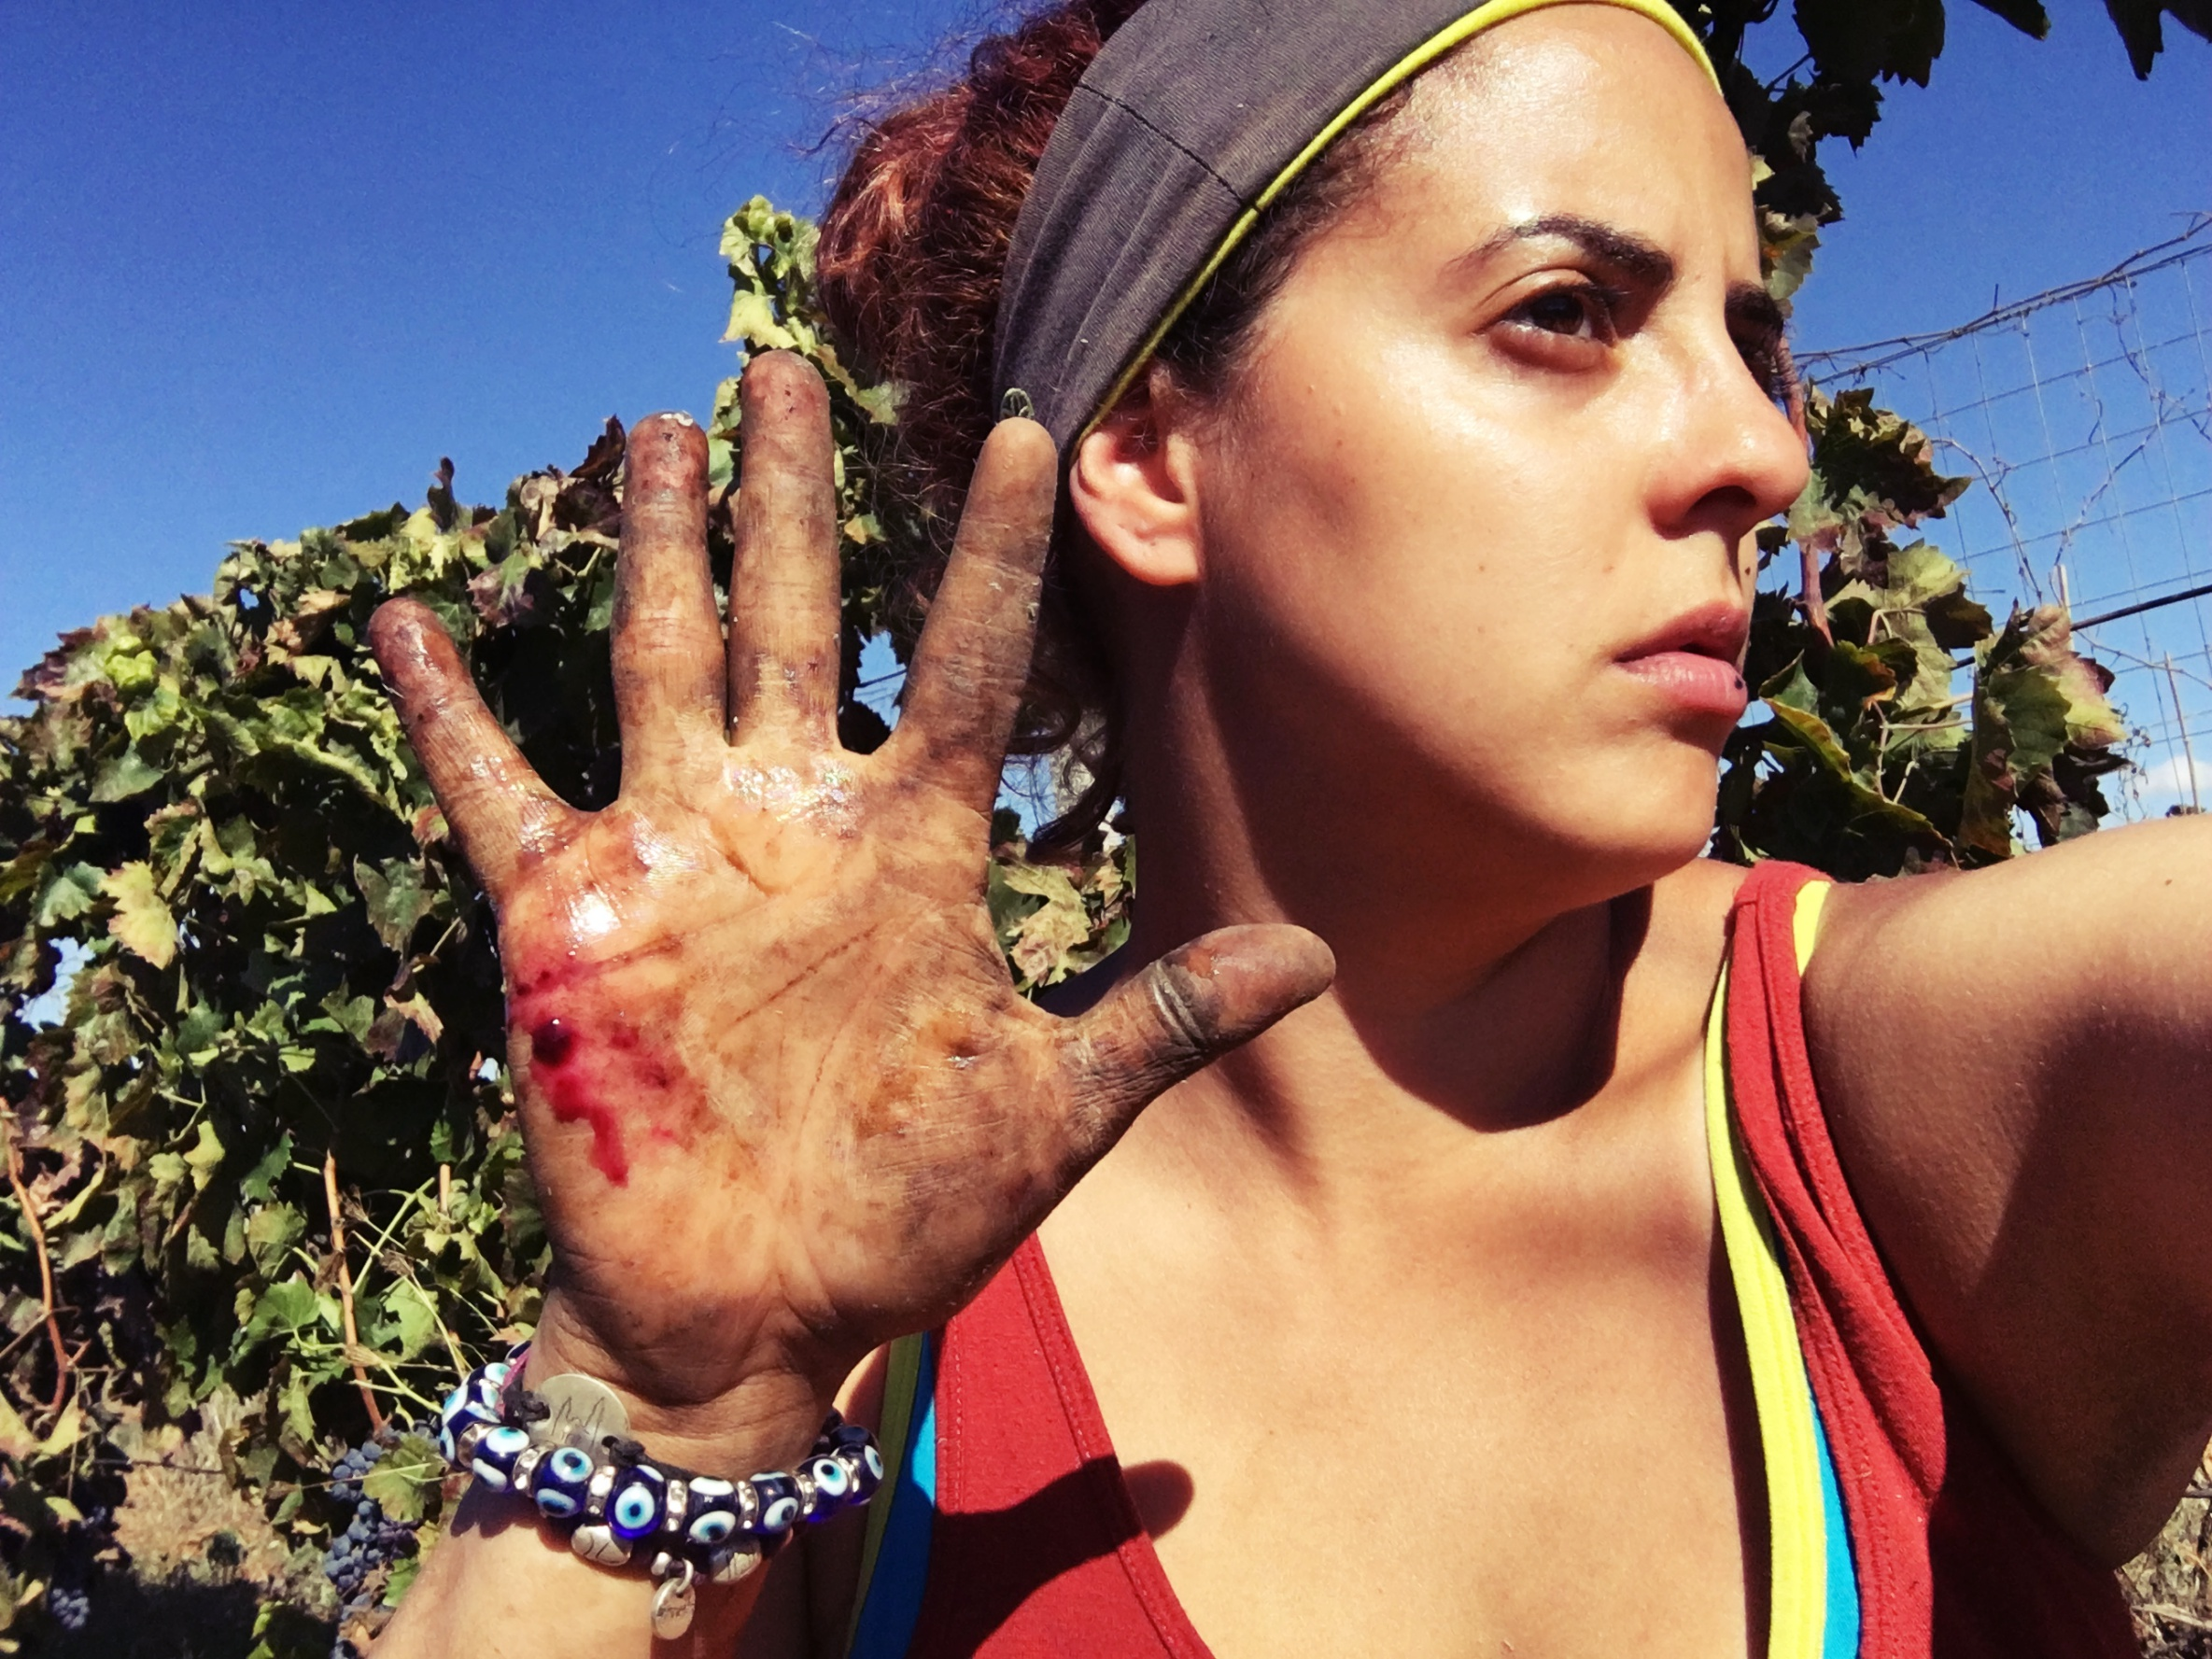 Harvest work can be brutal- as demonstrated by sommelier Yumi Ortiz